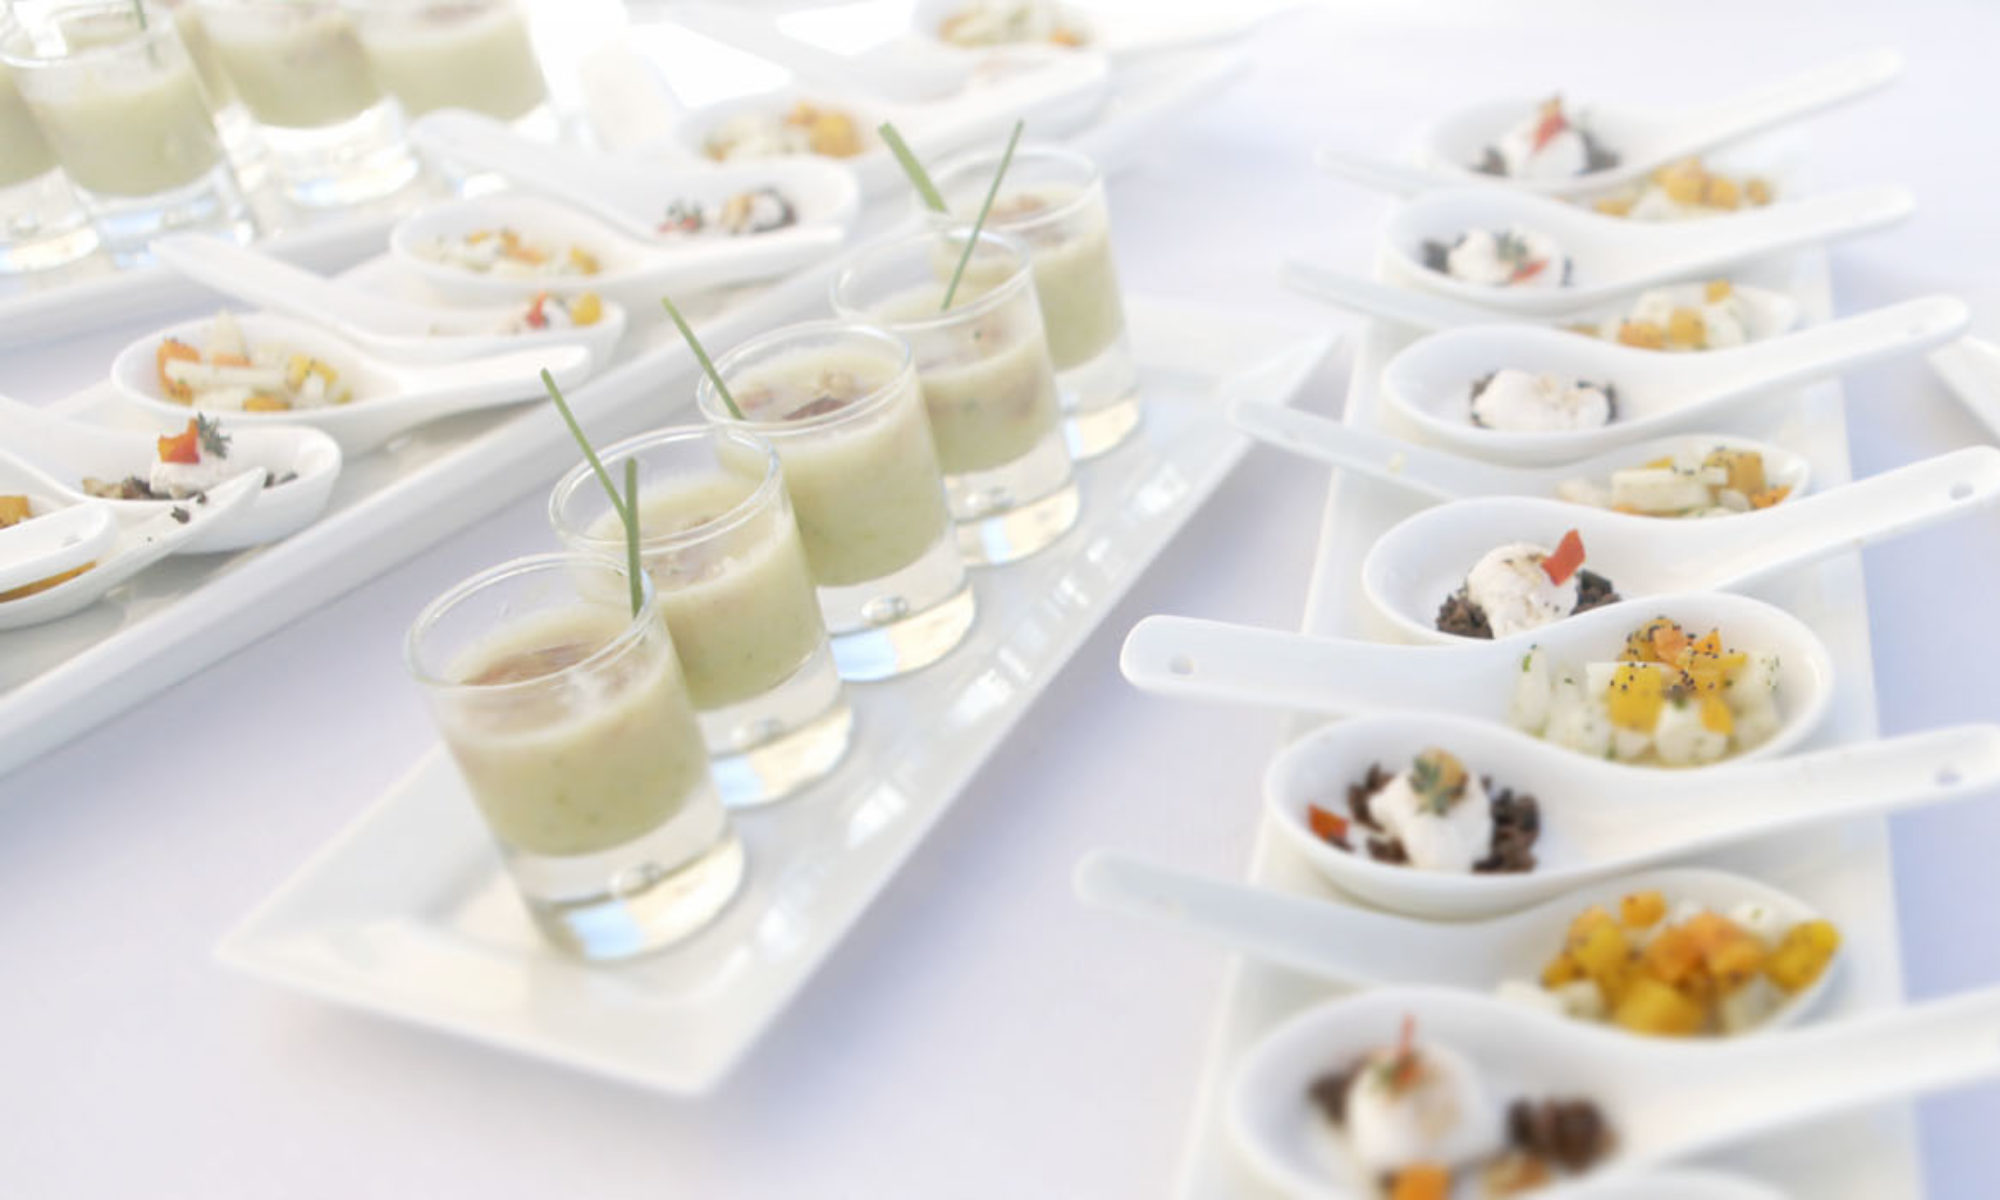 catering e banqueting salerno - photo#3